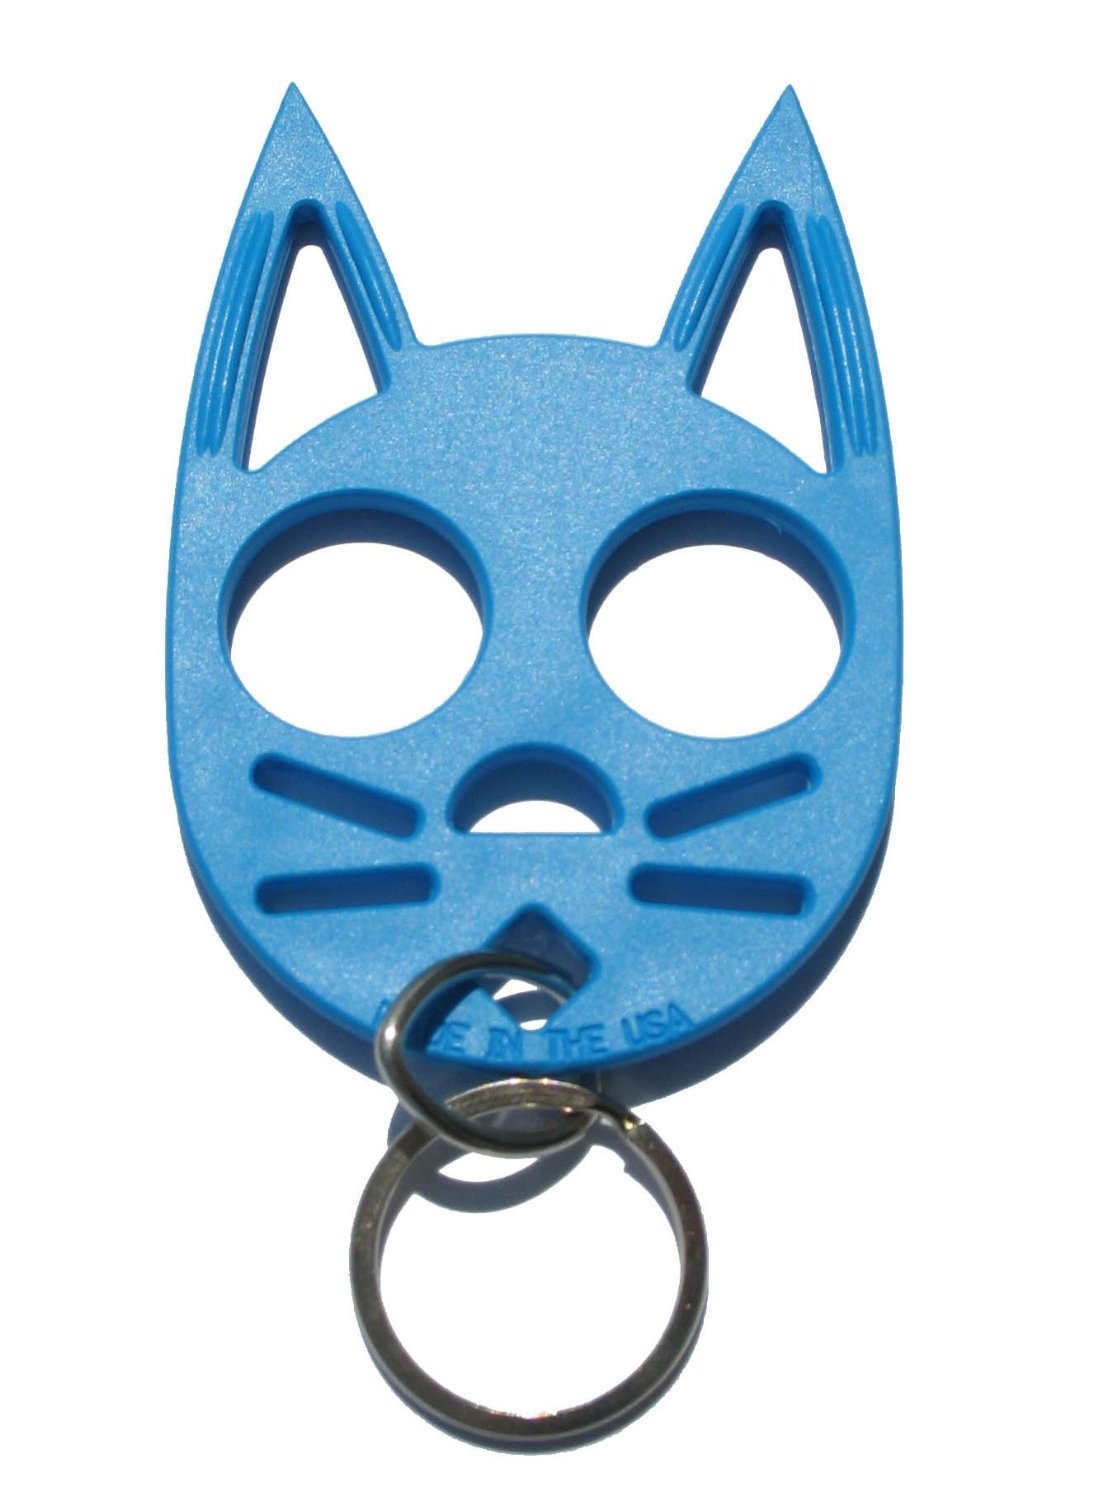 Wildcat Security & Self Defense Key Chains